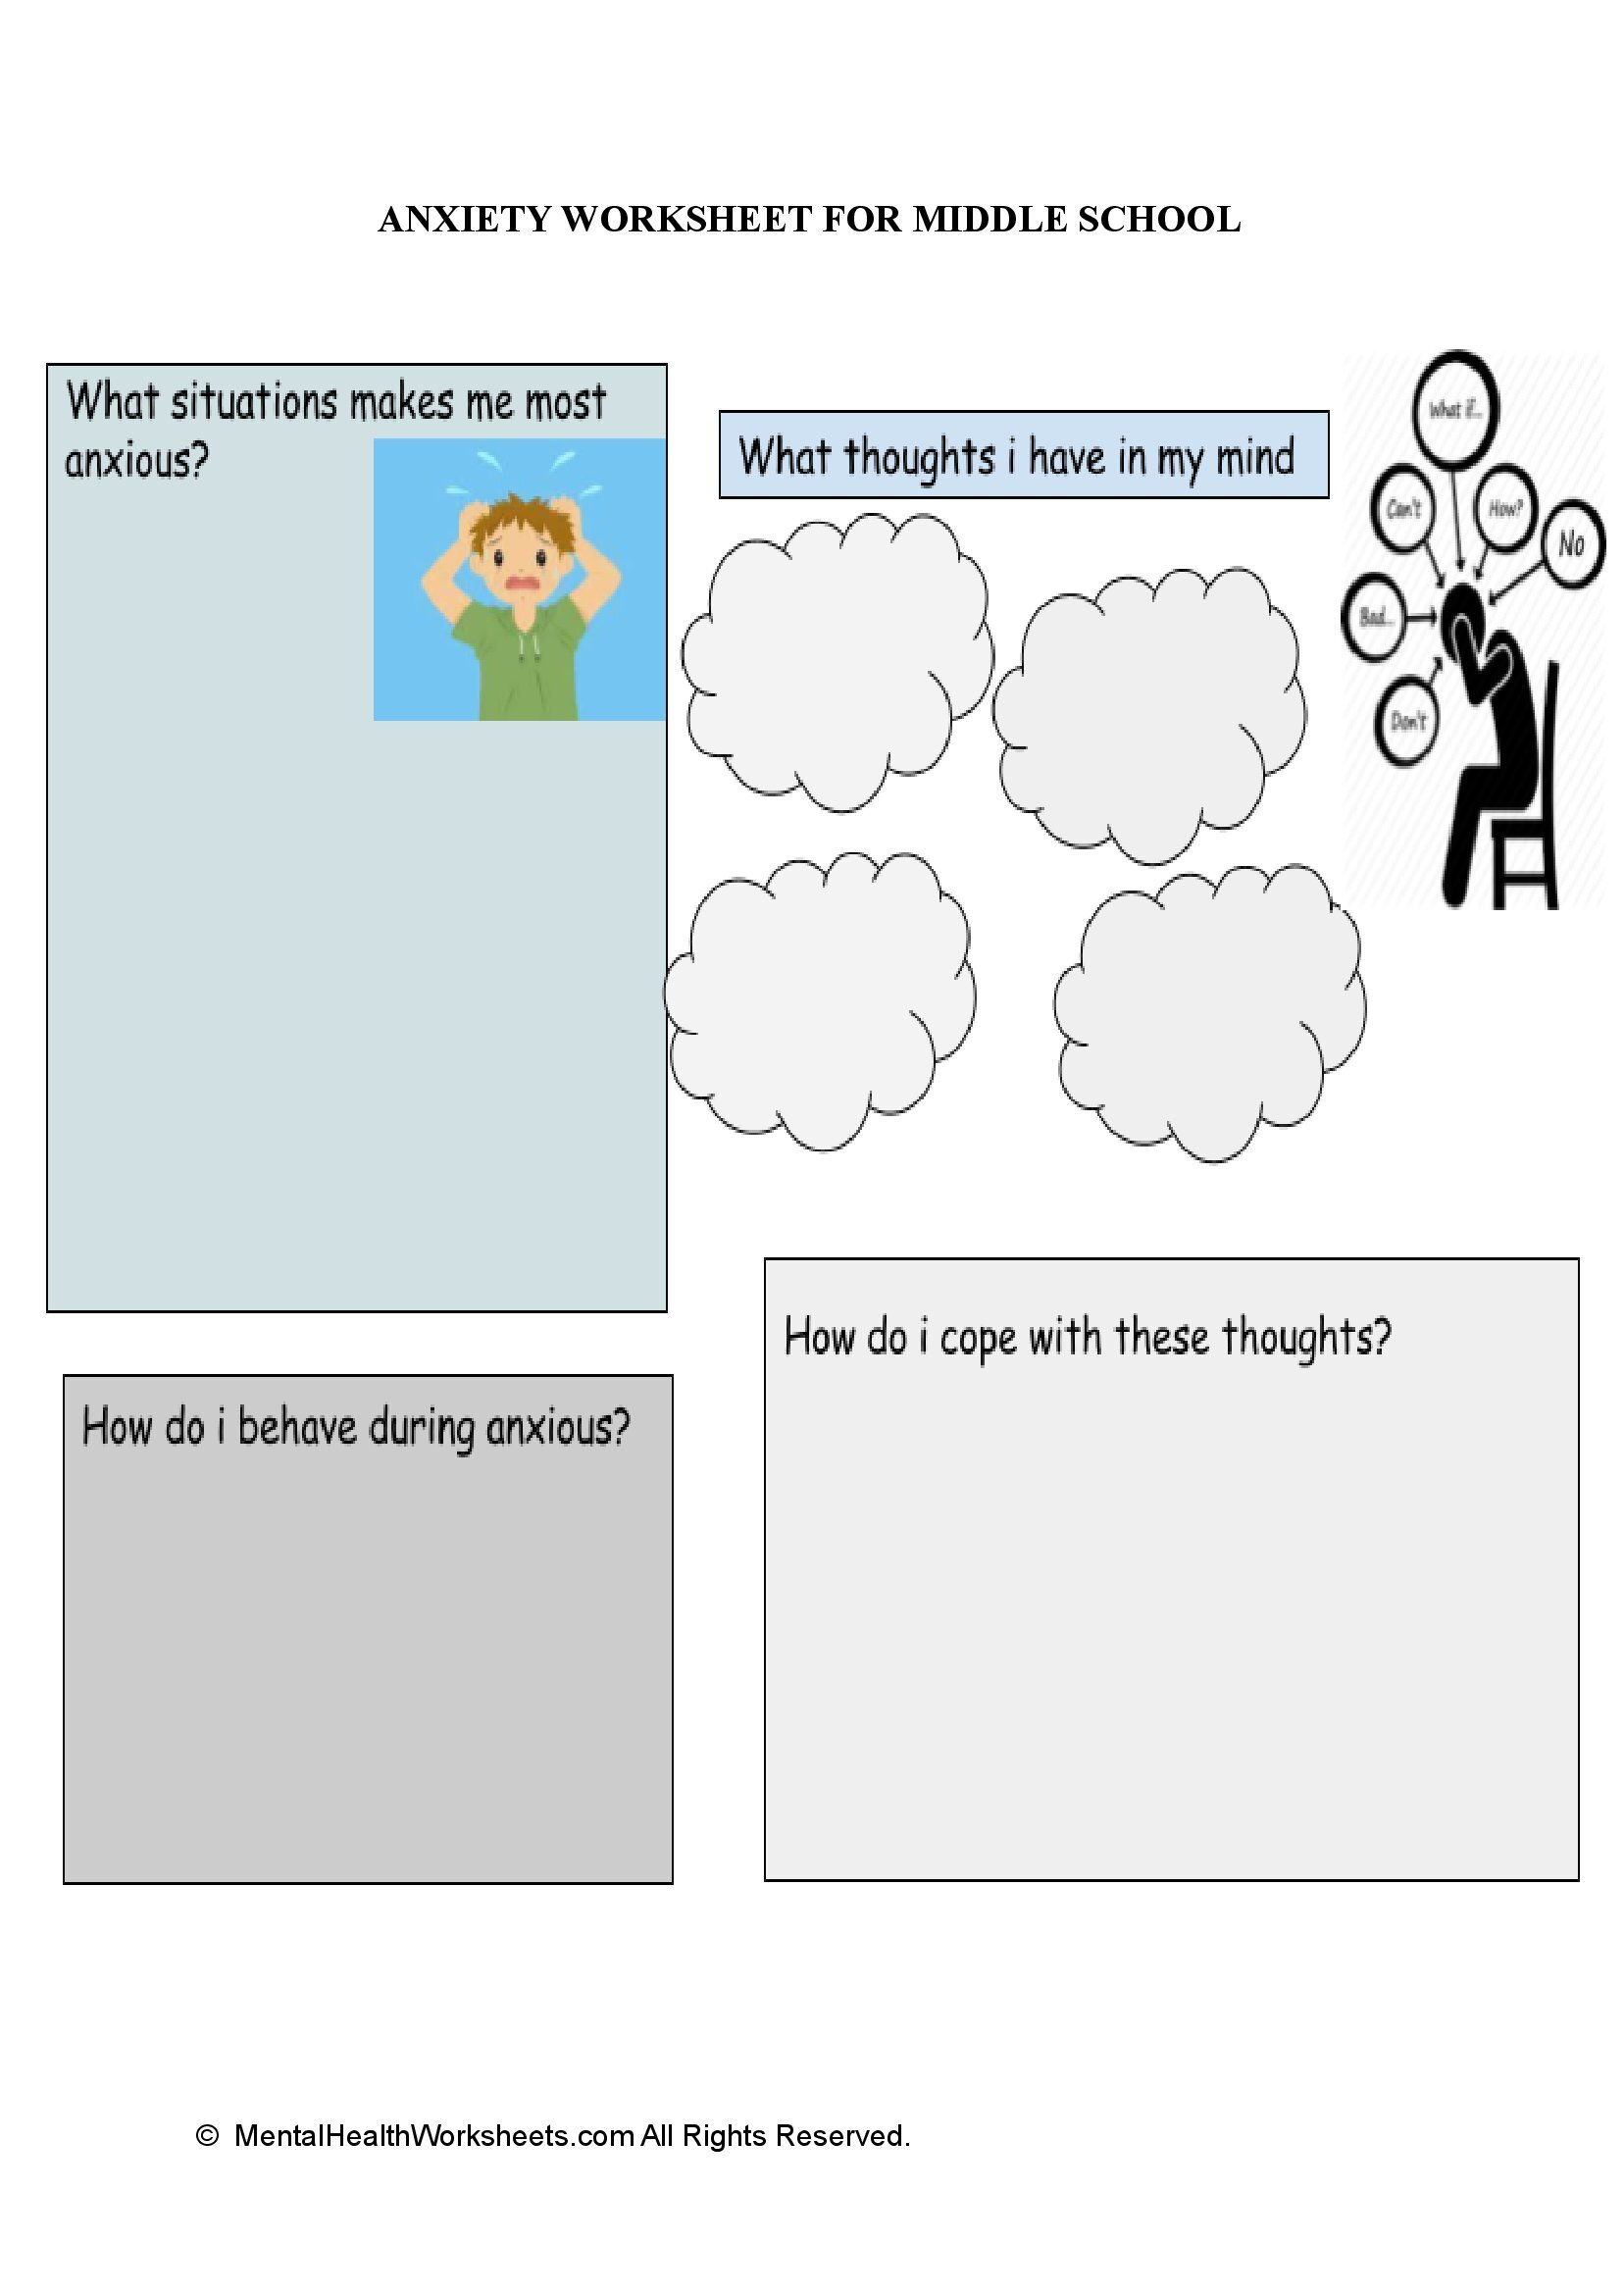 ANXIETY WORKSHEET FOR MIDDLE SCHOOL